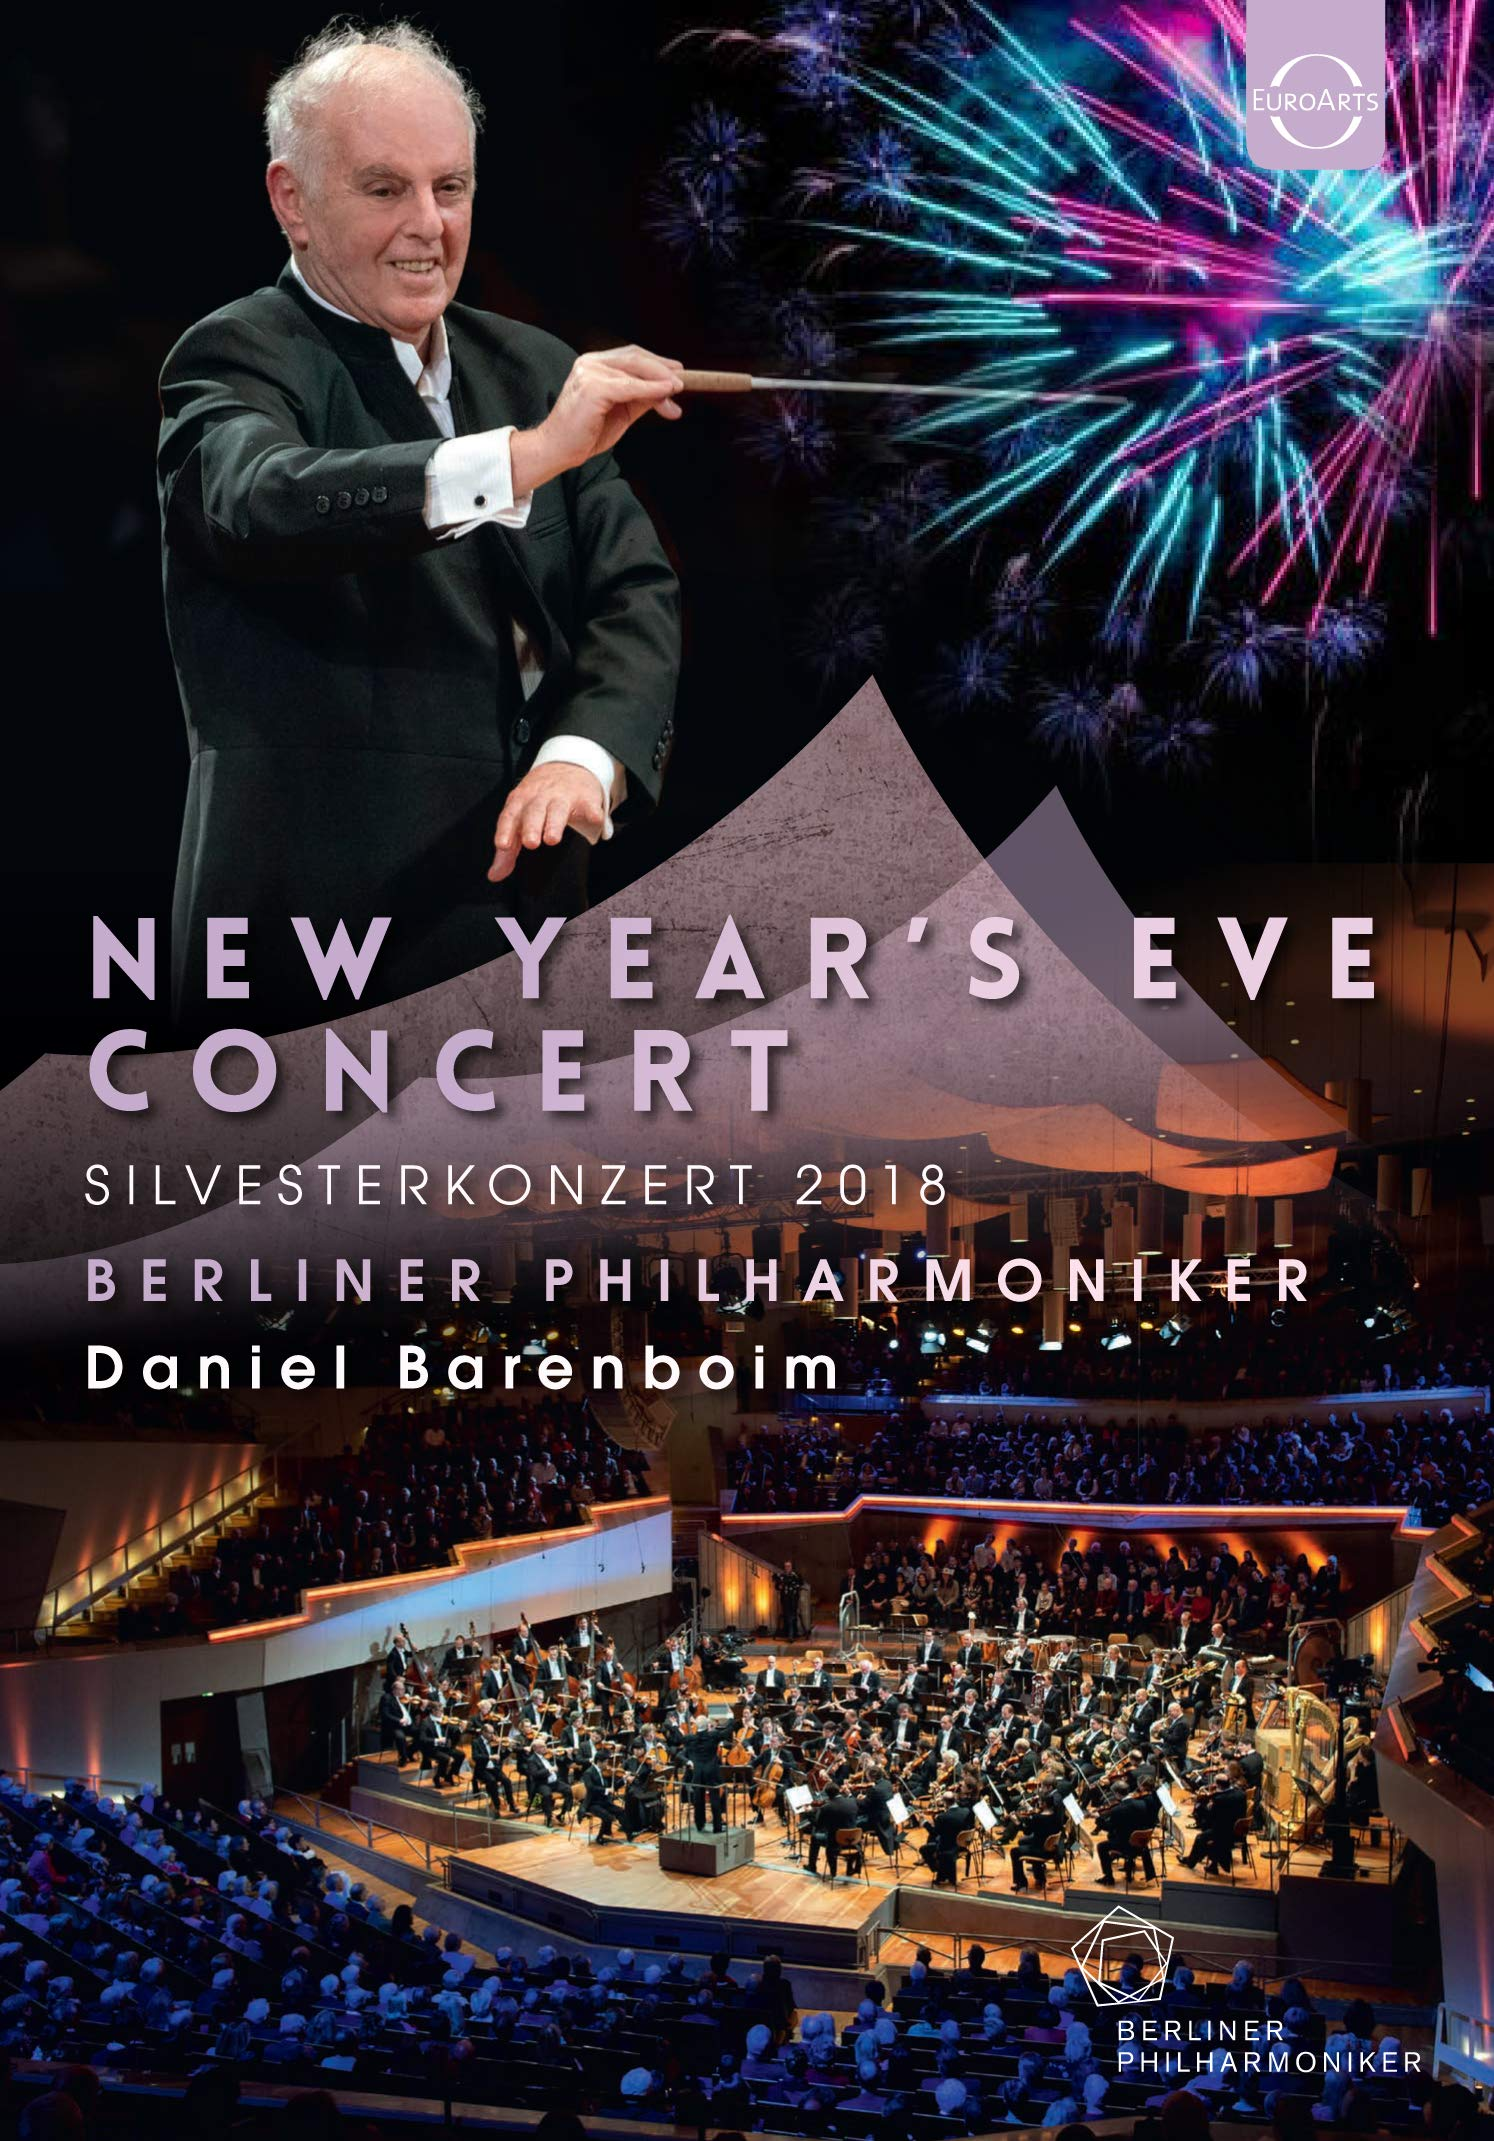 DVD : DANIEL BARENBOIM & BERLINER PHILHARMONIKER - New Year's Eve Concert 2018 (United Kingdom - Import)